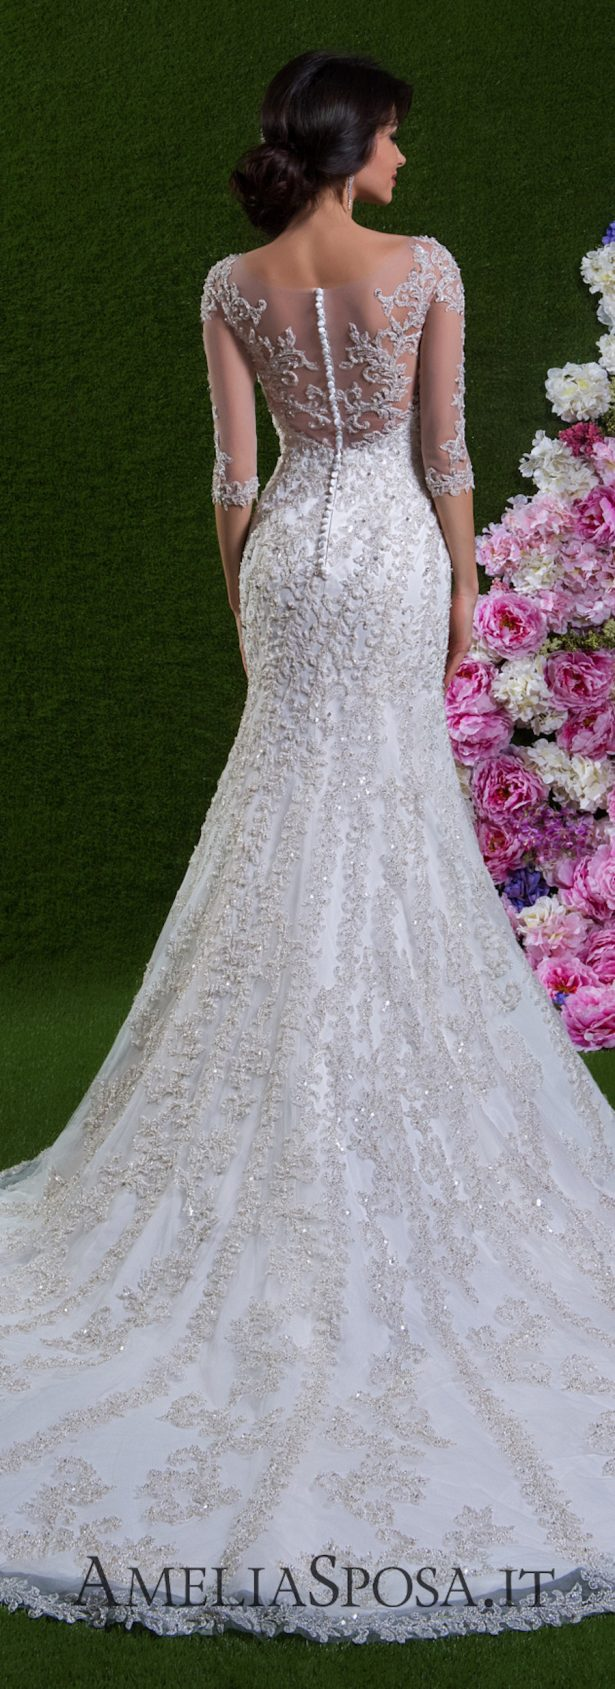 Amelia Sposa Wedding Dress 2018